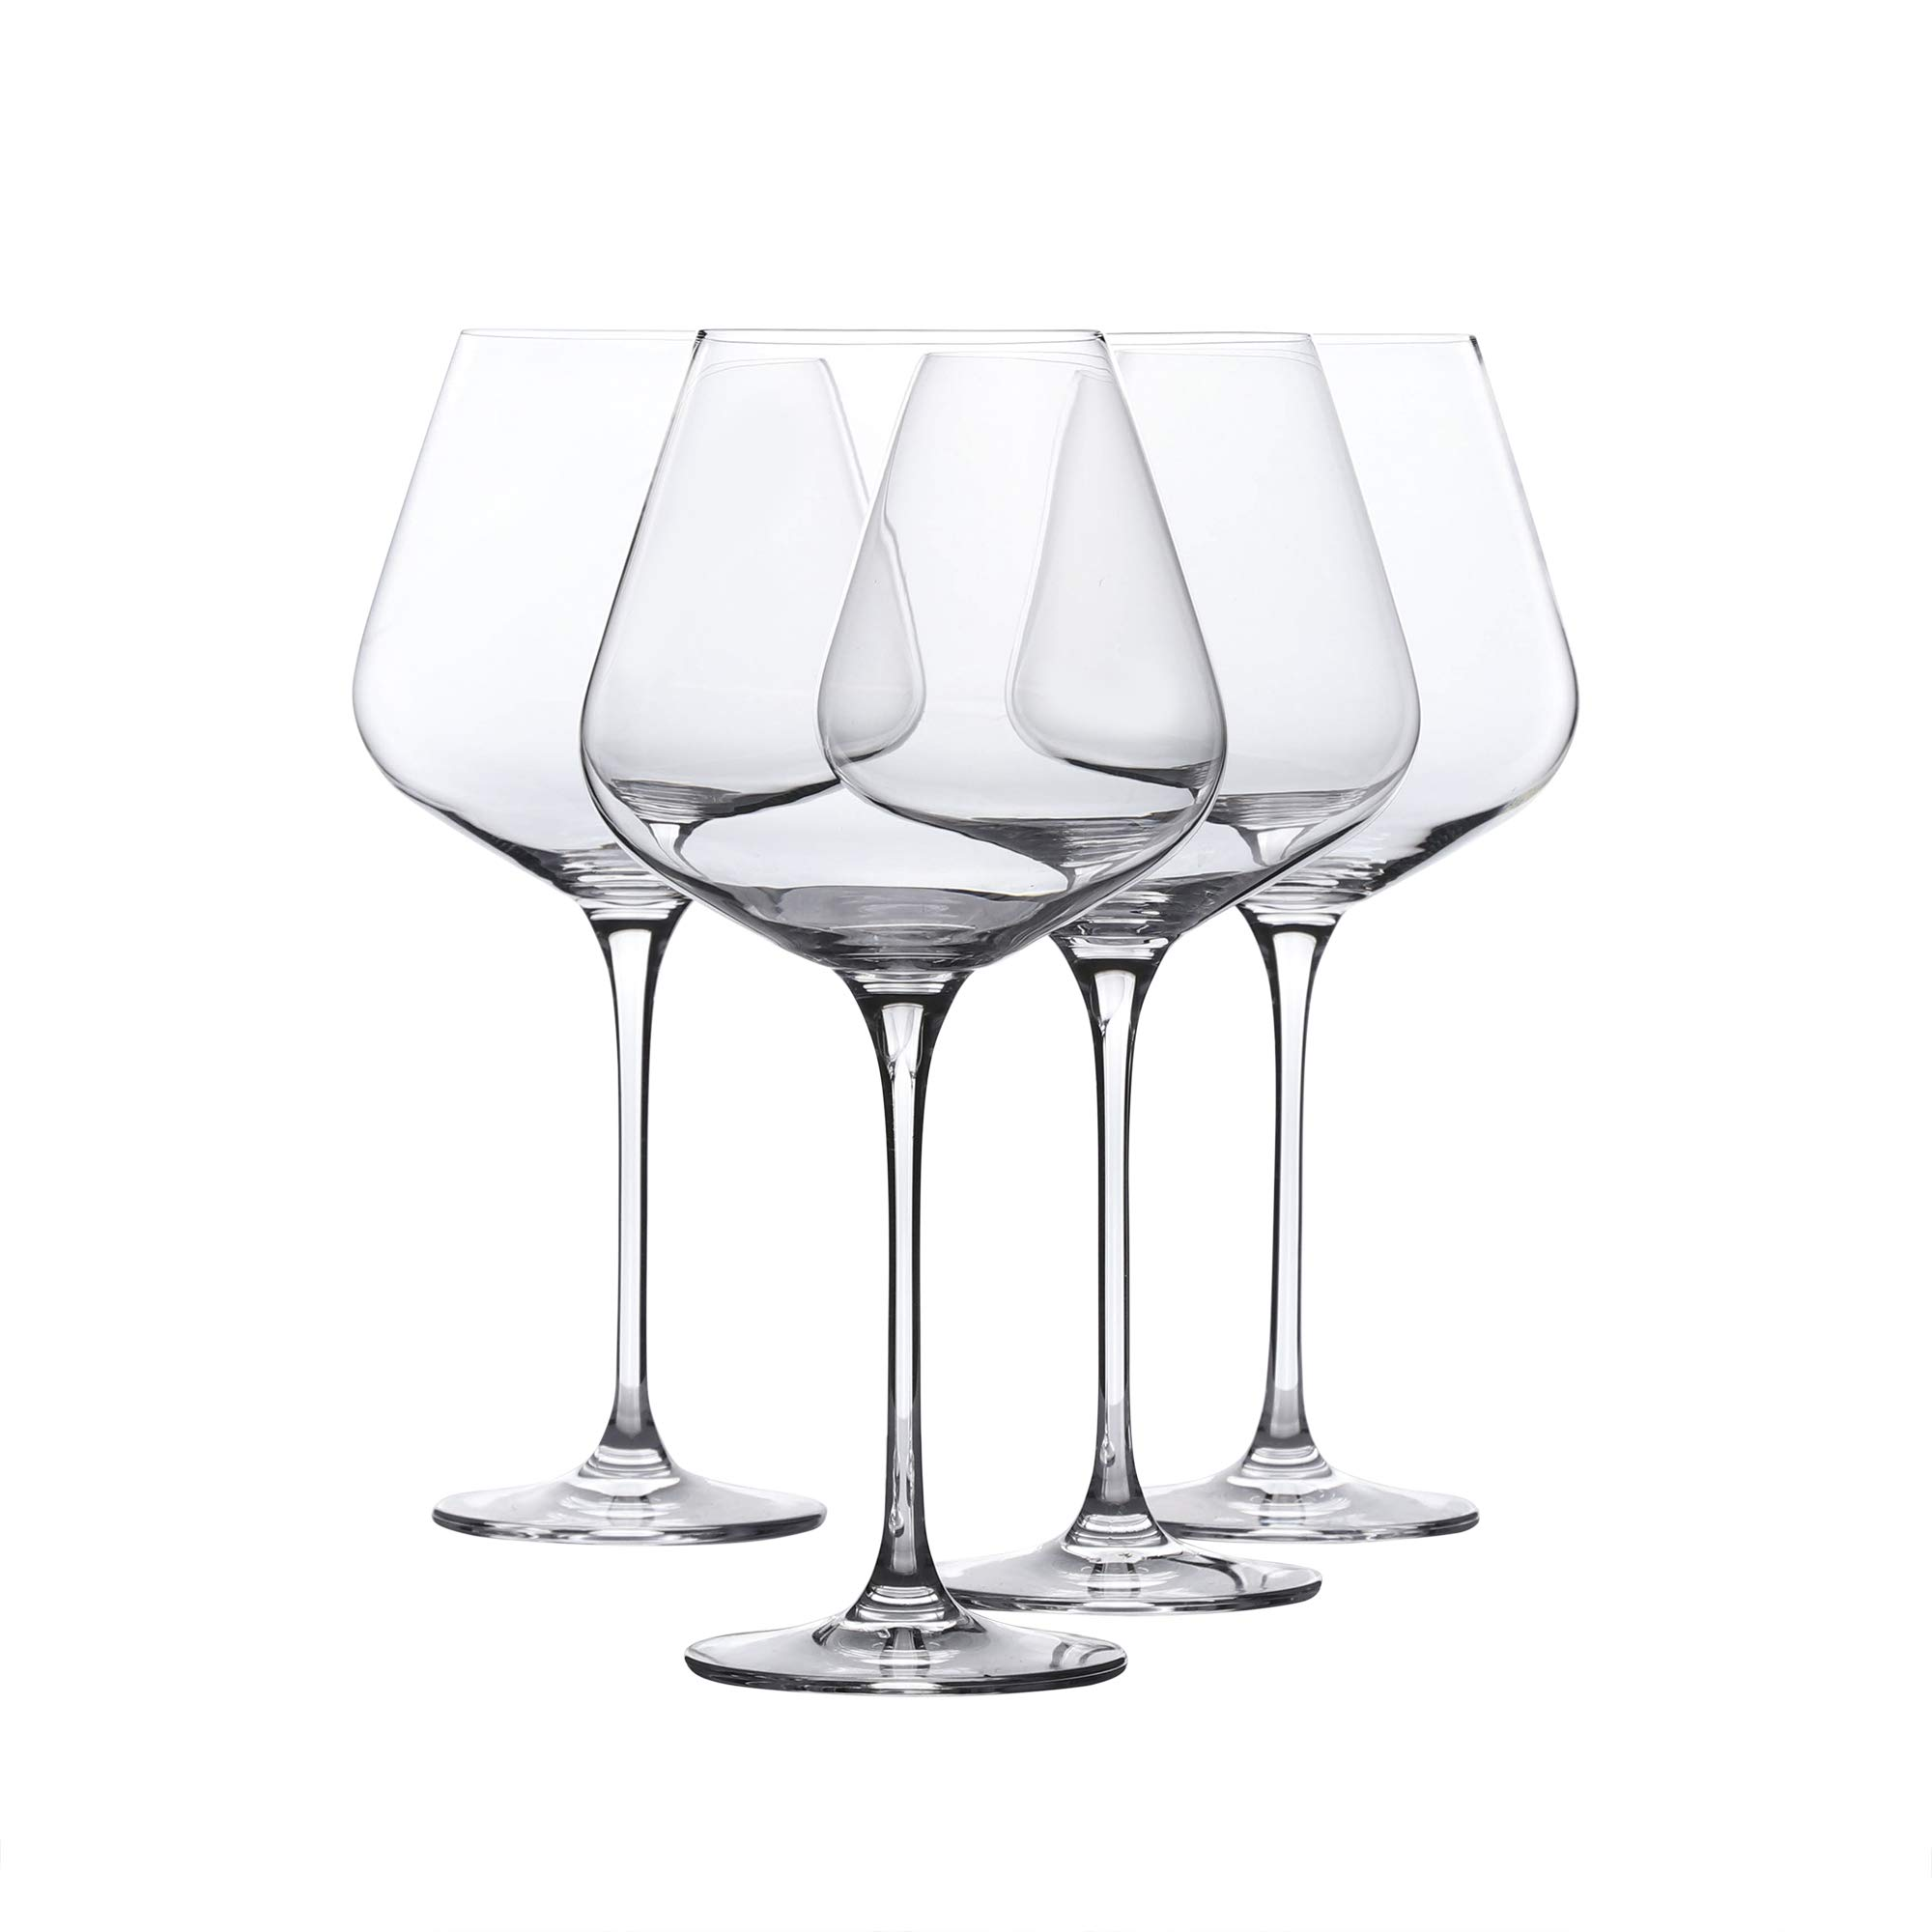 Red Wine Glasses - Crystal Glass - Lead Free - Wine Glasses Set of 4 (29 Ounce)